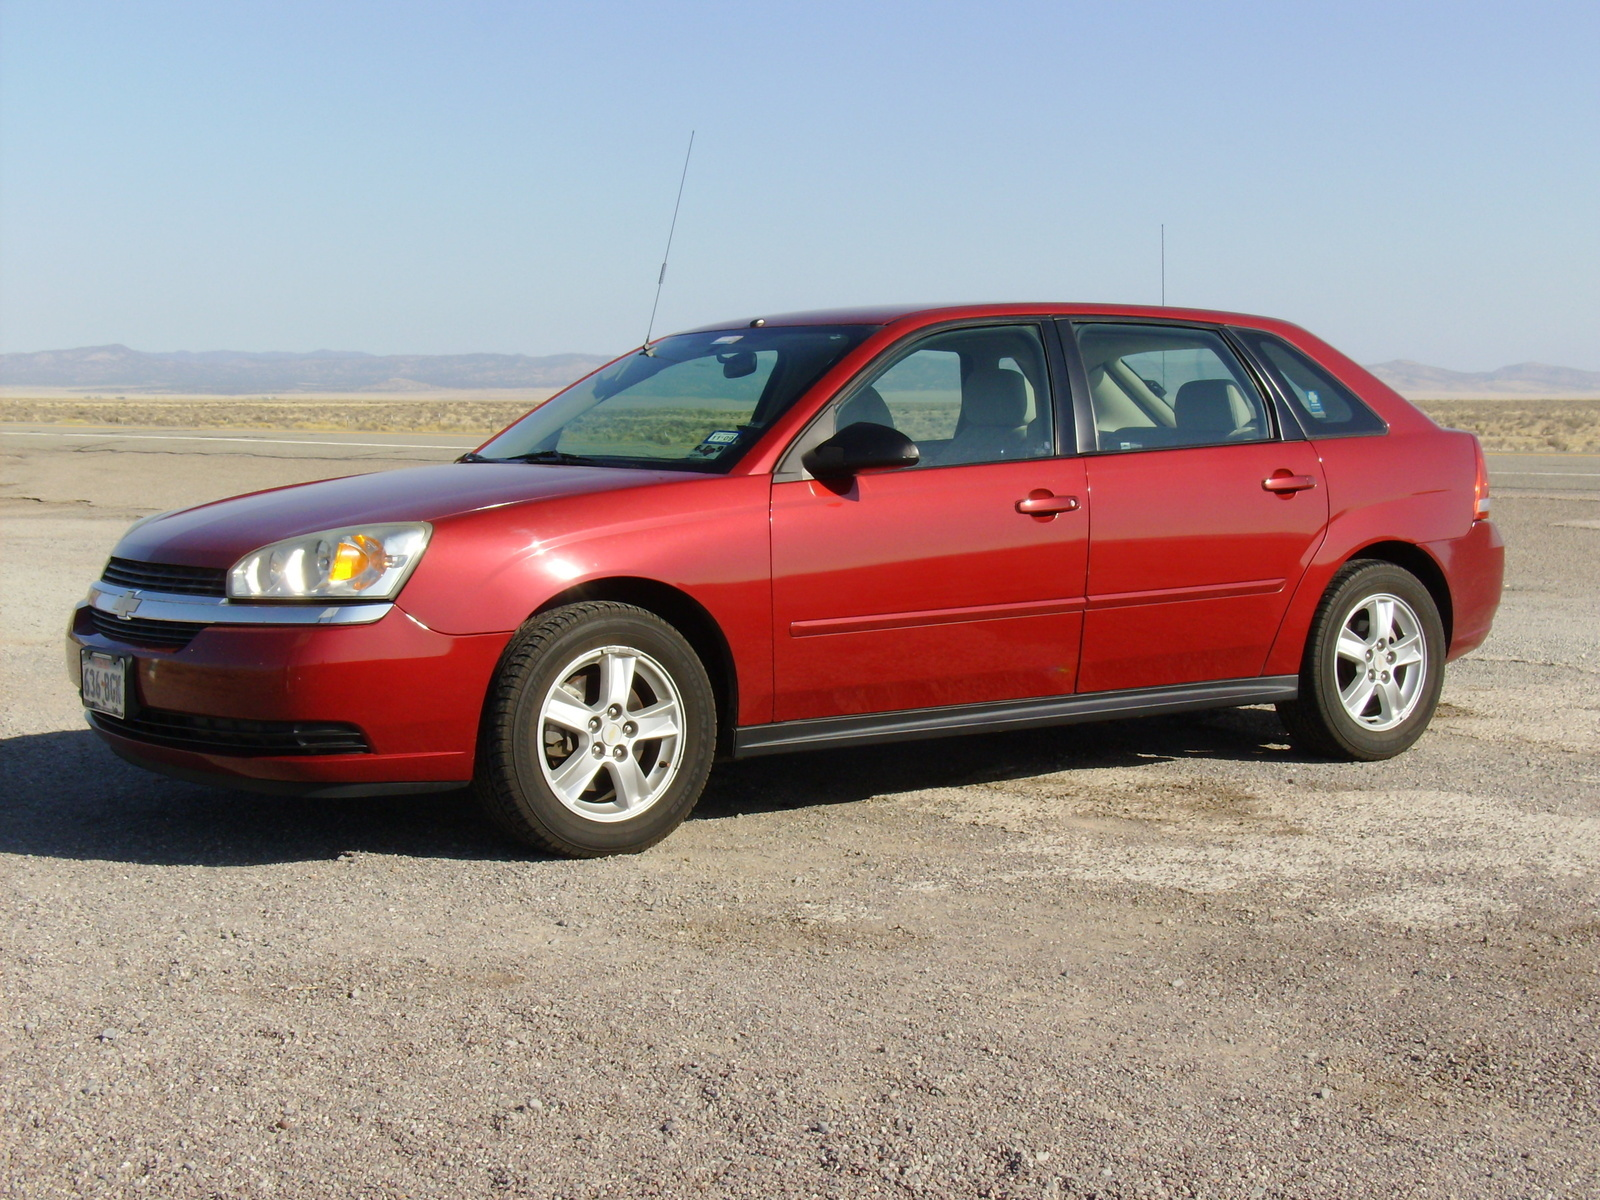 Chevrolet Malibu Maxx Dr Ls Hatchback Pic X on Lincoln Ls For Sale Cargurus